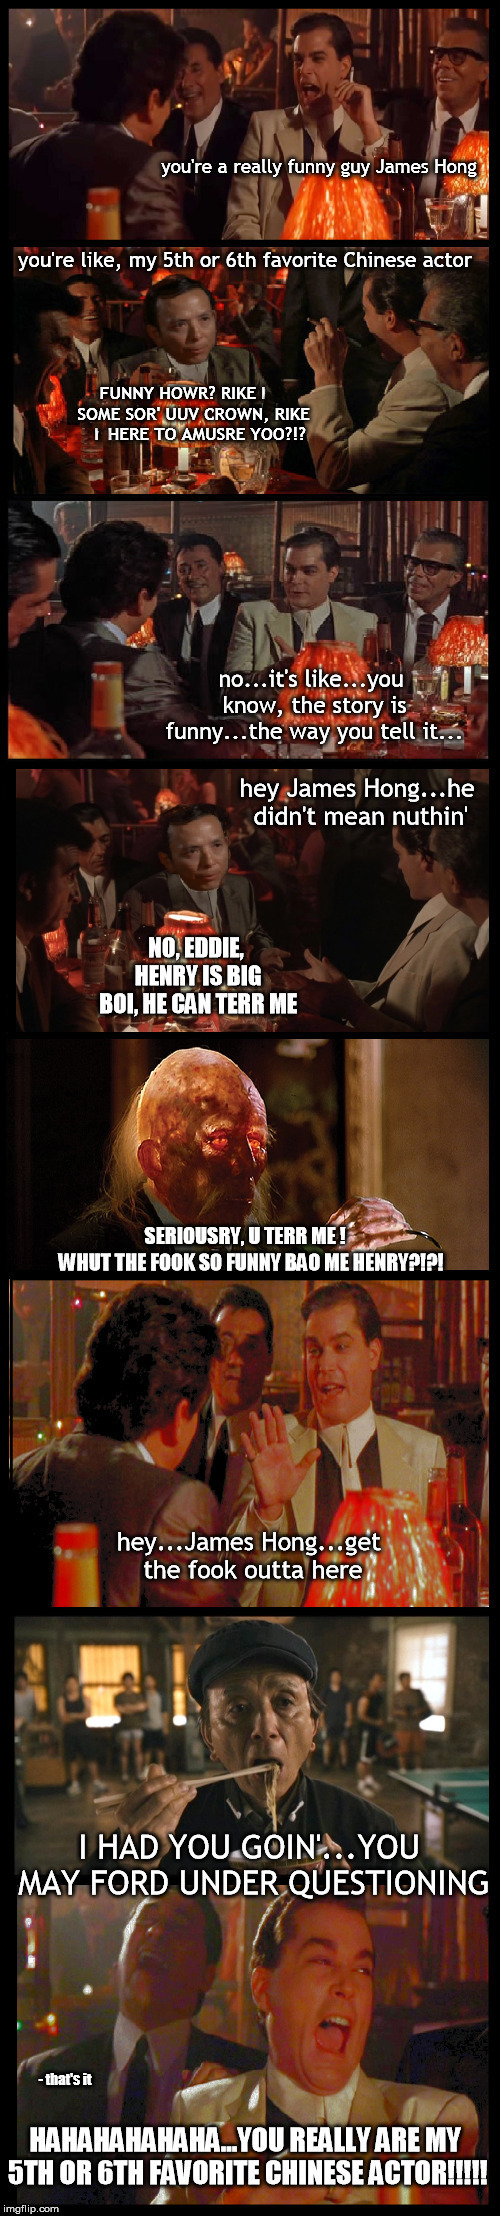 goodferras | SERIOUSRY, U TERR ME ! - that's it | image tagged in goodfellas,tommy,henry,funny,guy,memes | made w/ Imgflip meme maker